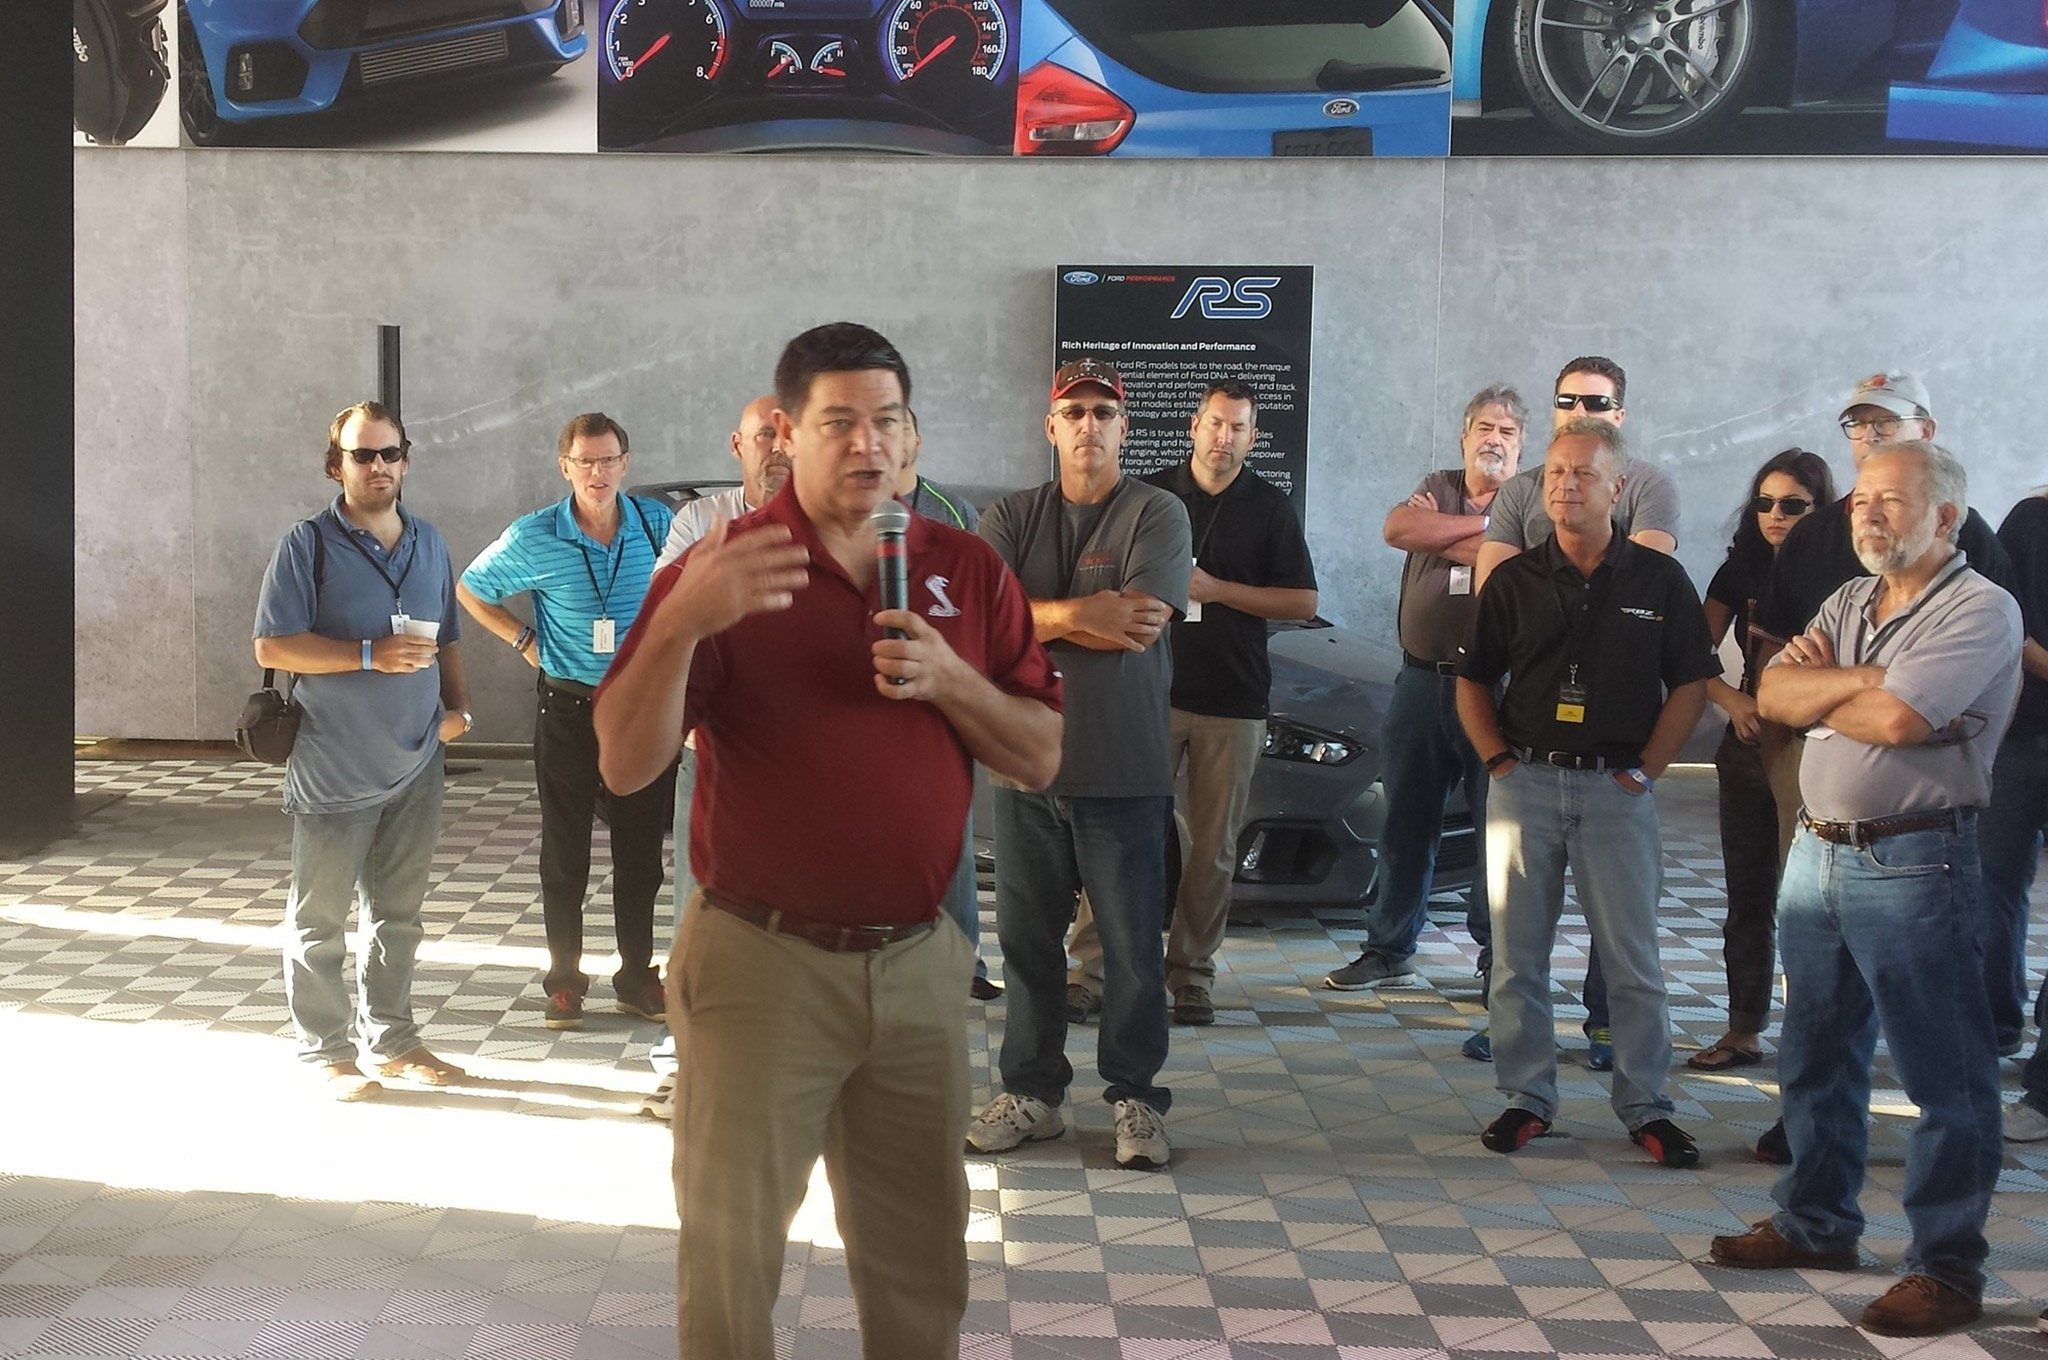 At each event there will be Ford staff (engineers, product managers, and so on) to answer questions, discuss Shelby and Ford history, and tell you all about the capabilities of the Ford Shelby GT350. Here, Jim Owens, marketing manager for Ford Performance, addresses the crowd at a past Track Tour event.